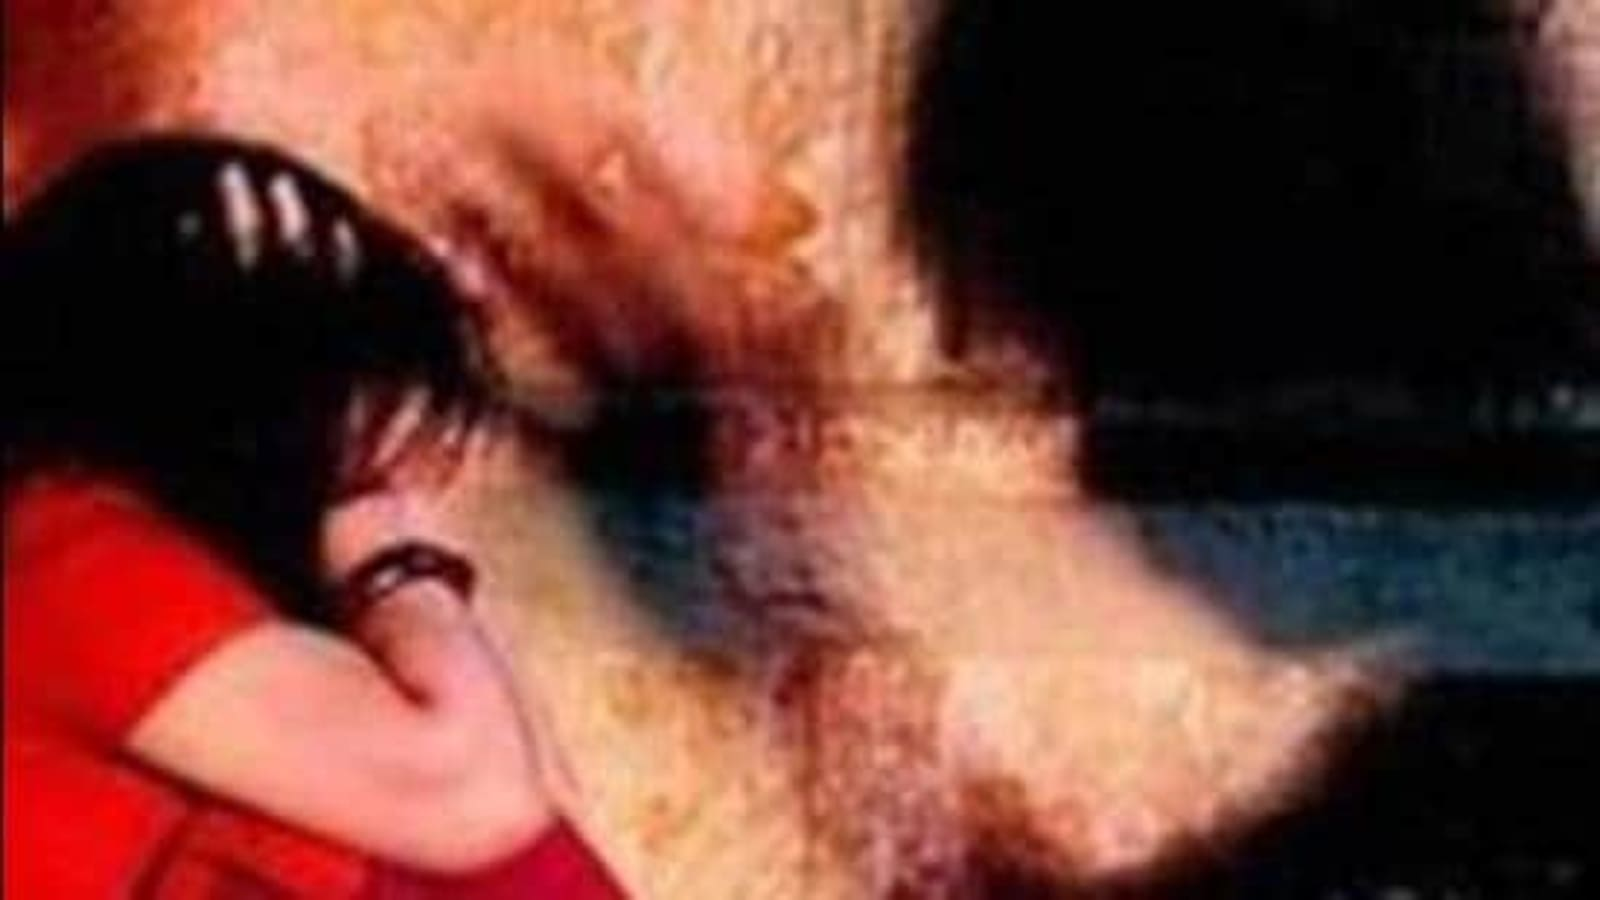 Kolkata woman allegedly raped in Patna, says she is getting threats